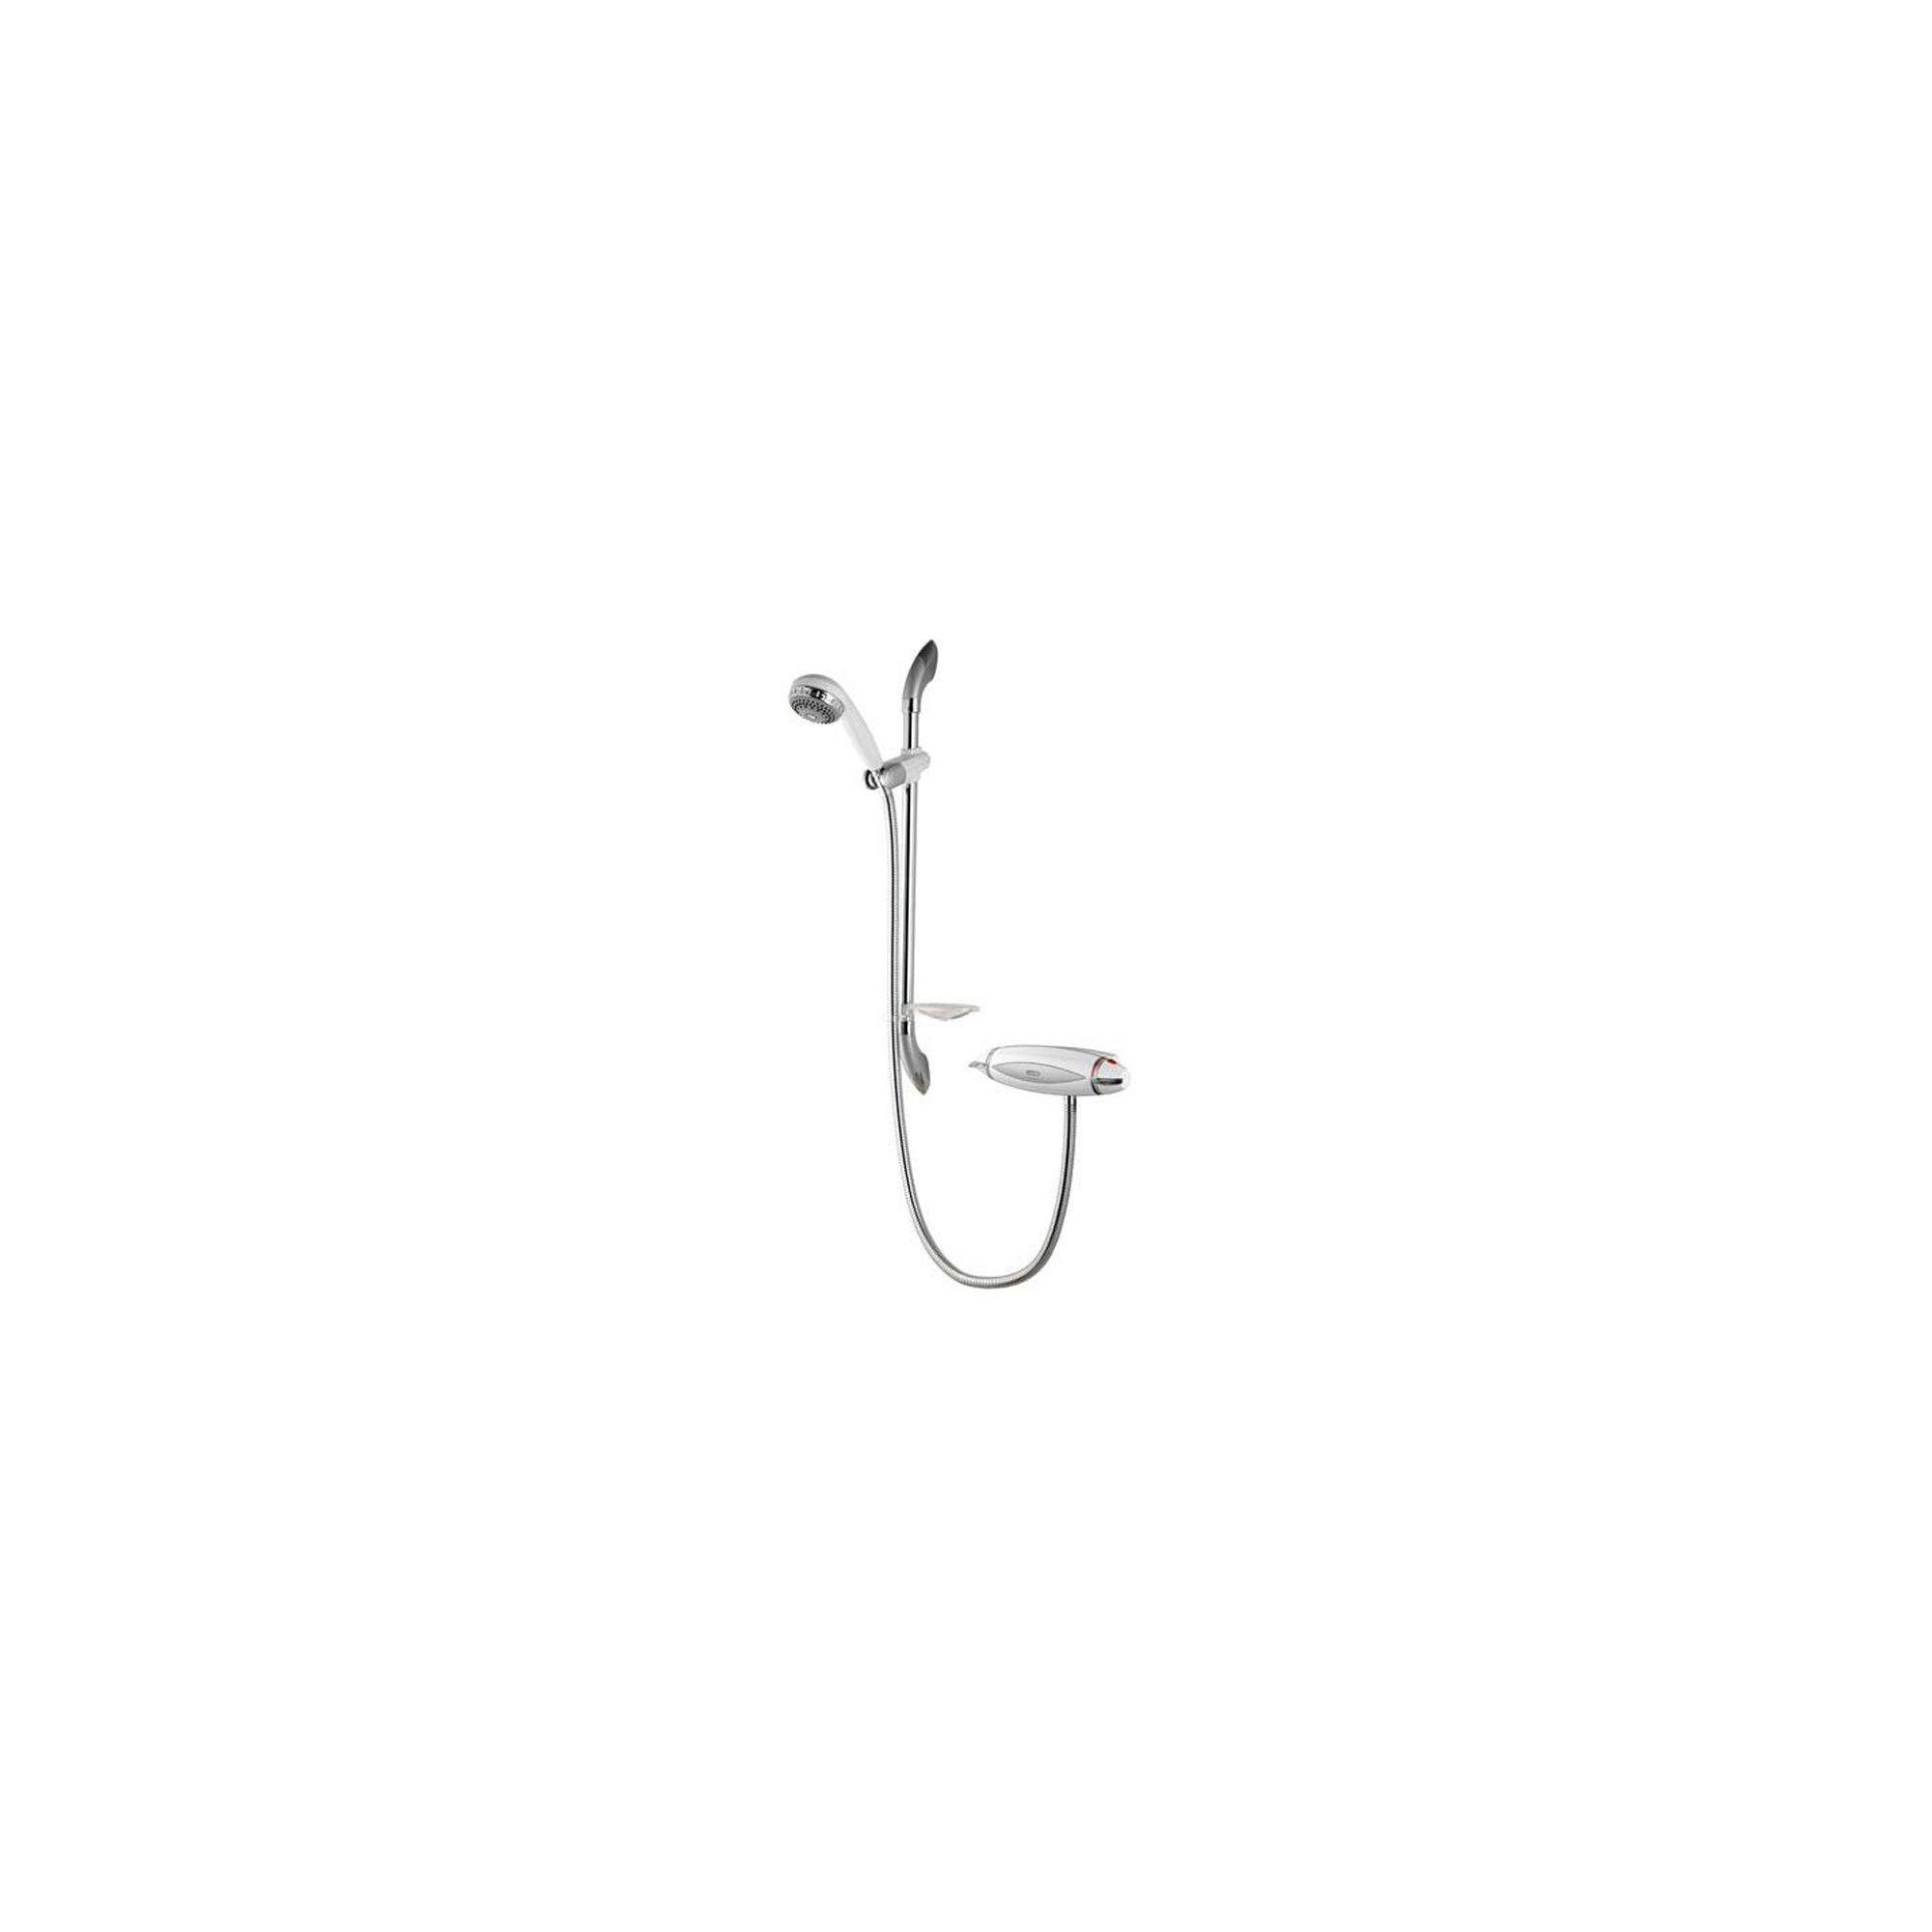 Aqualisa Aquarian Thermo Exposed Shower Valve with Adjustable Shower Head White / Chrome at Tesco Direct